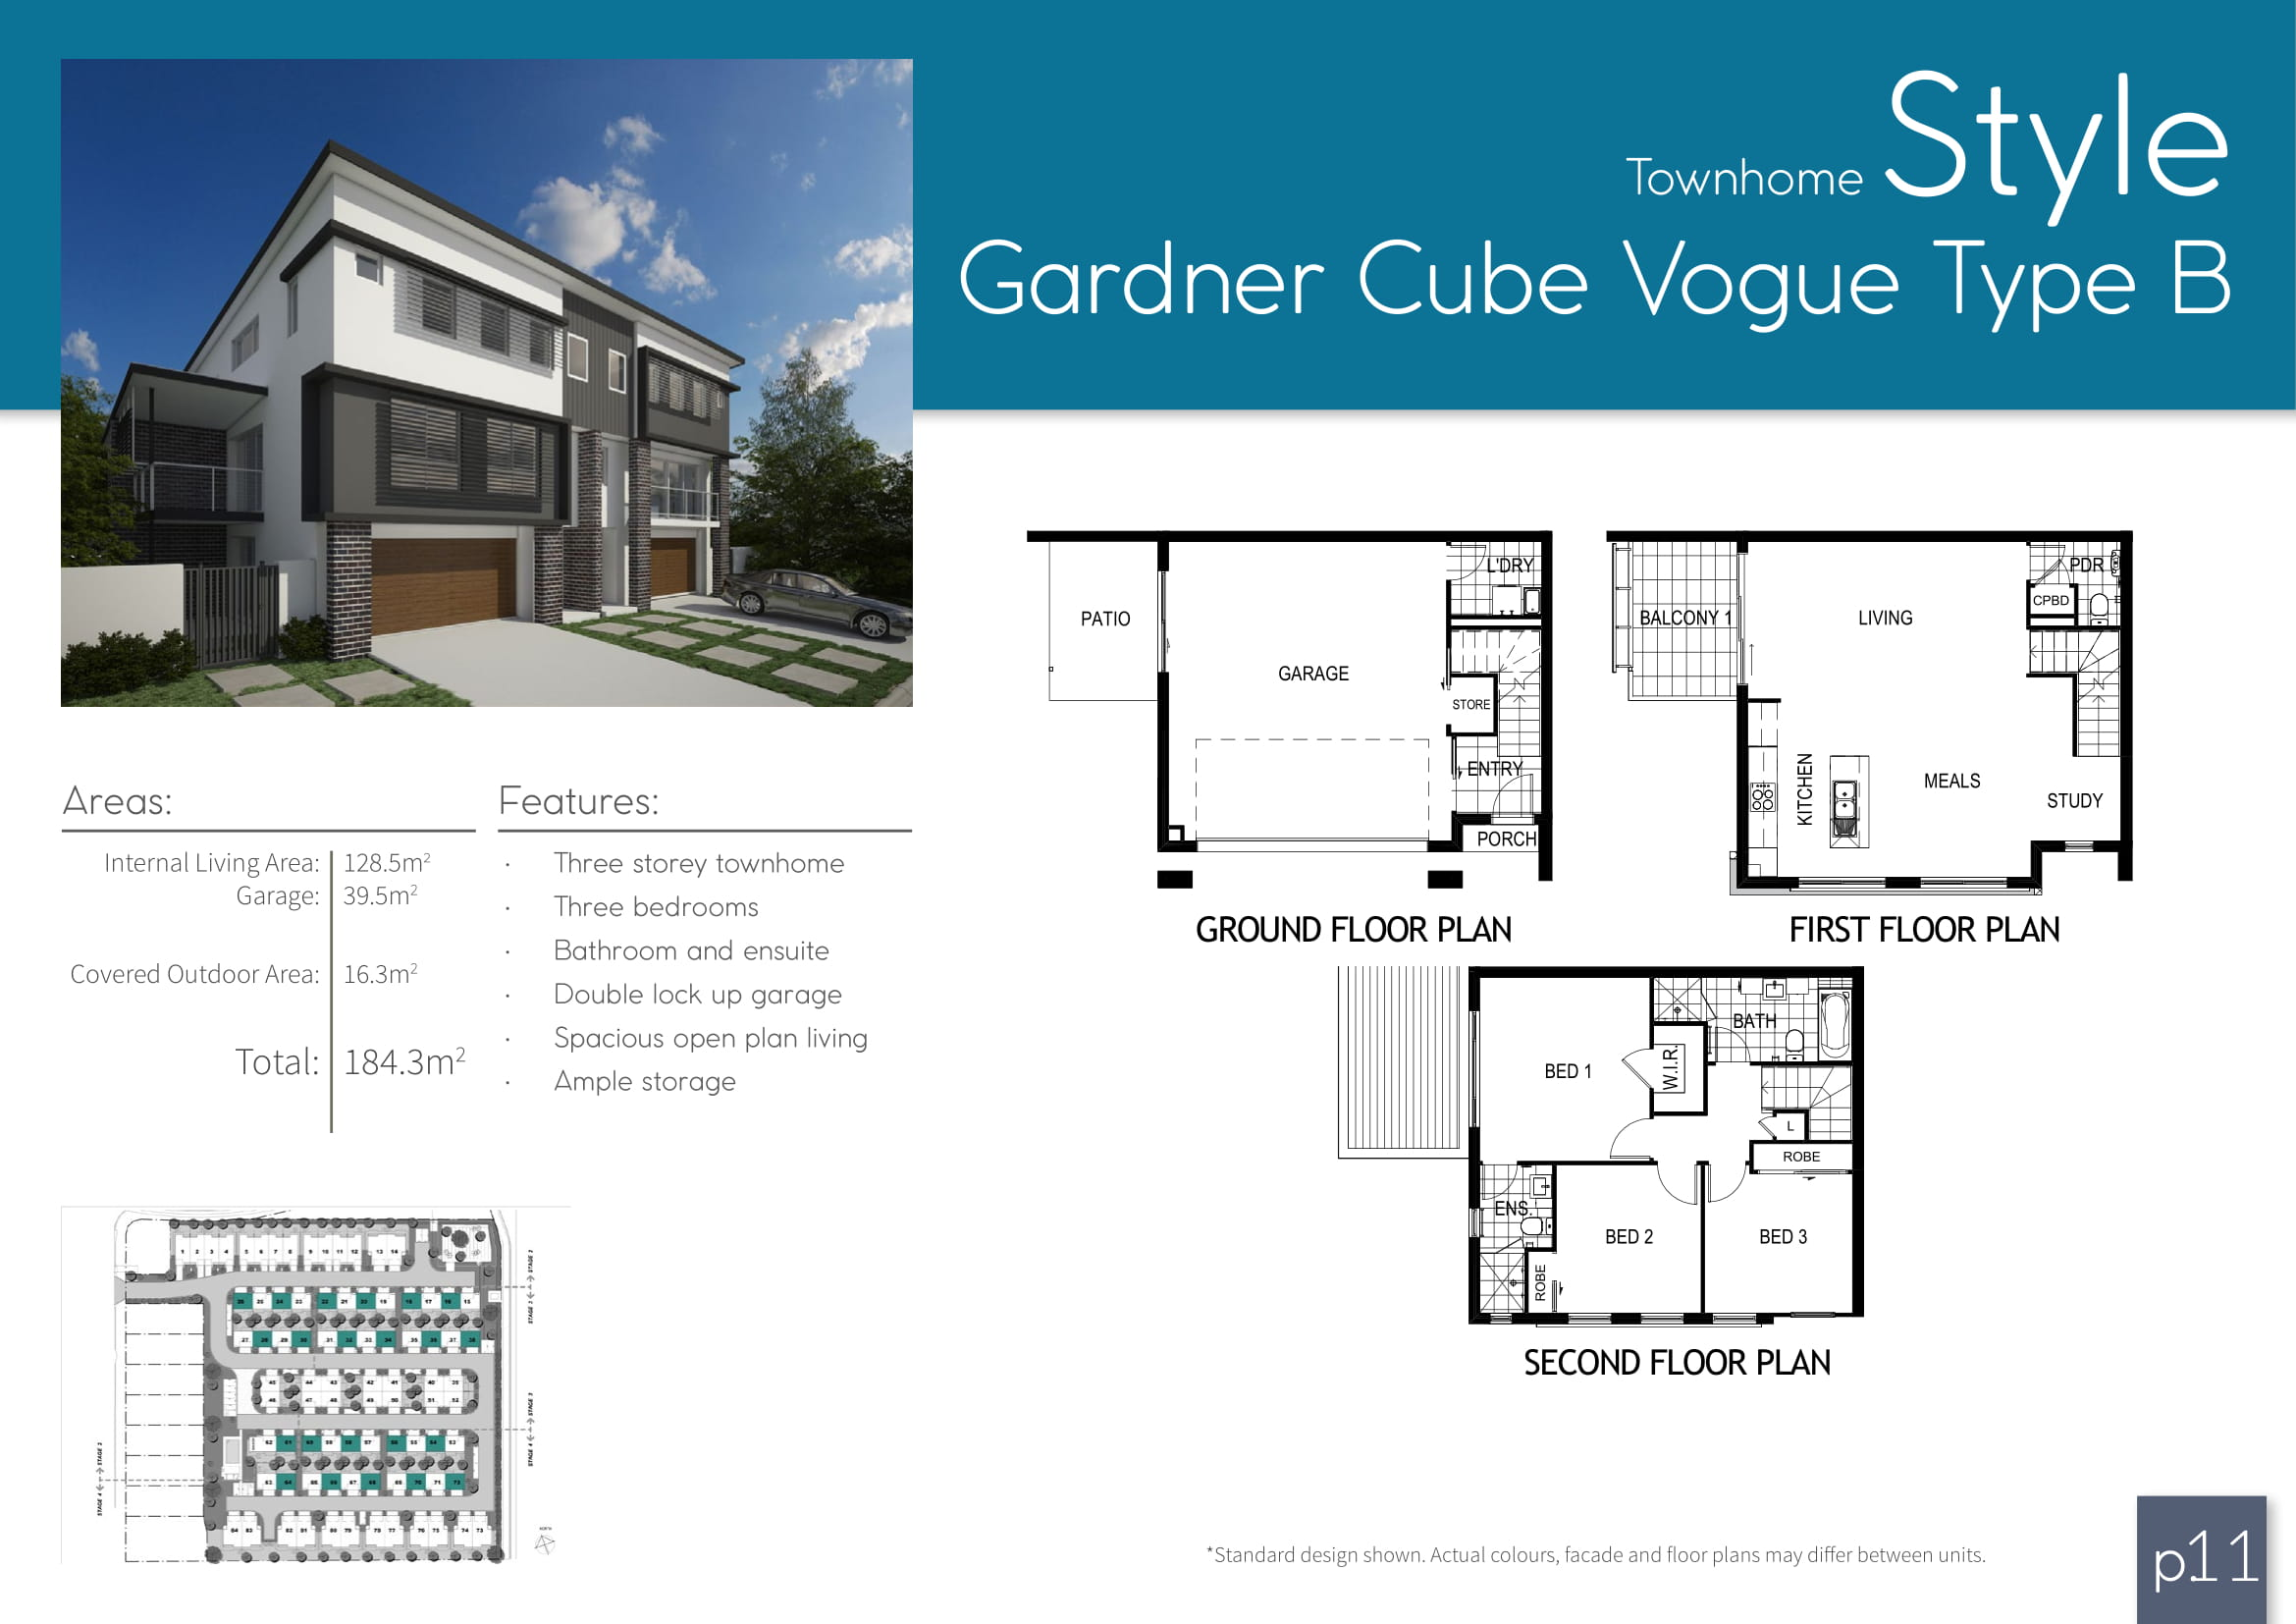 Gardner-Cube-Vogue-Type-B